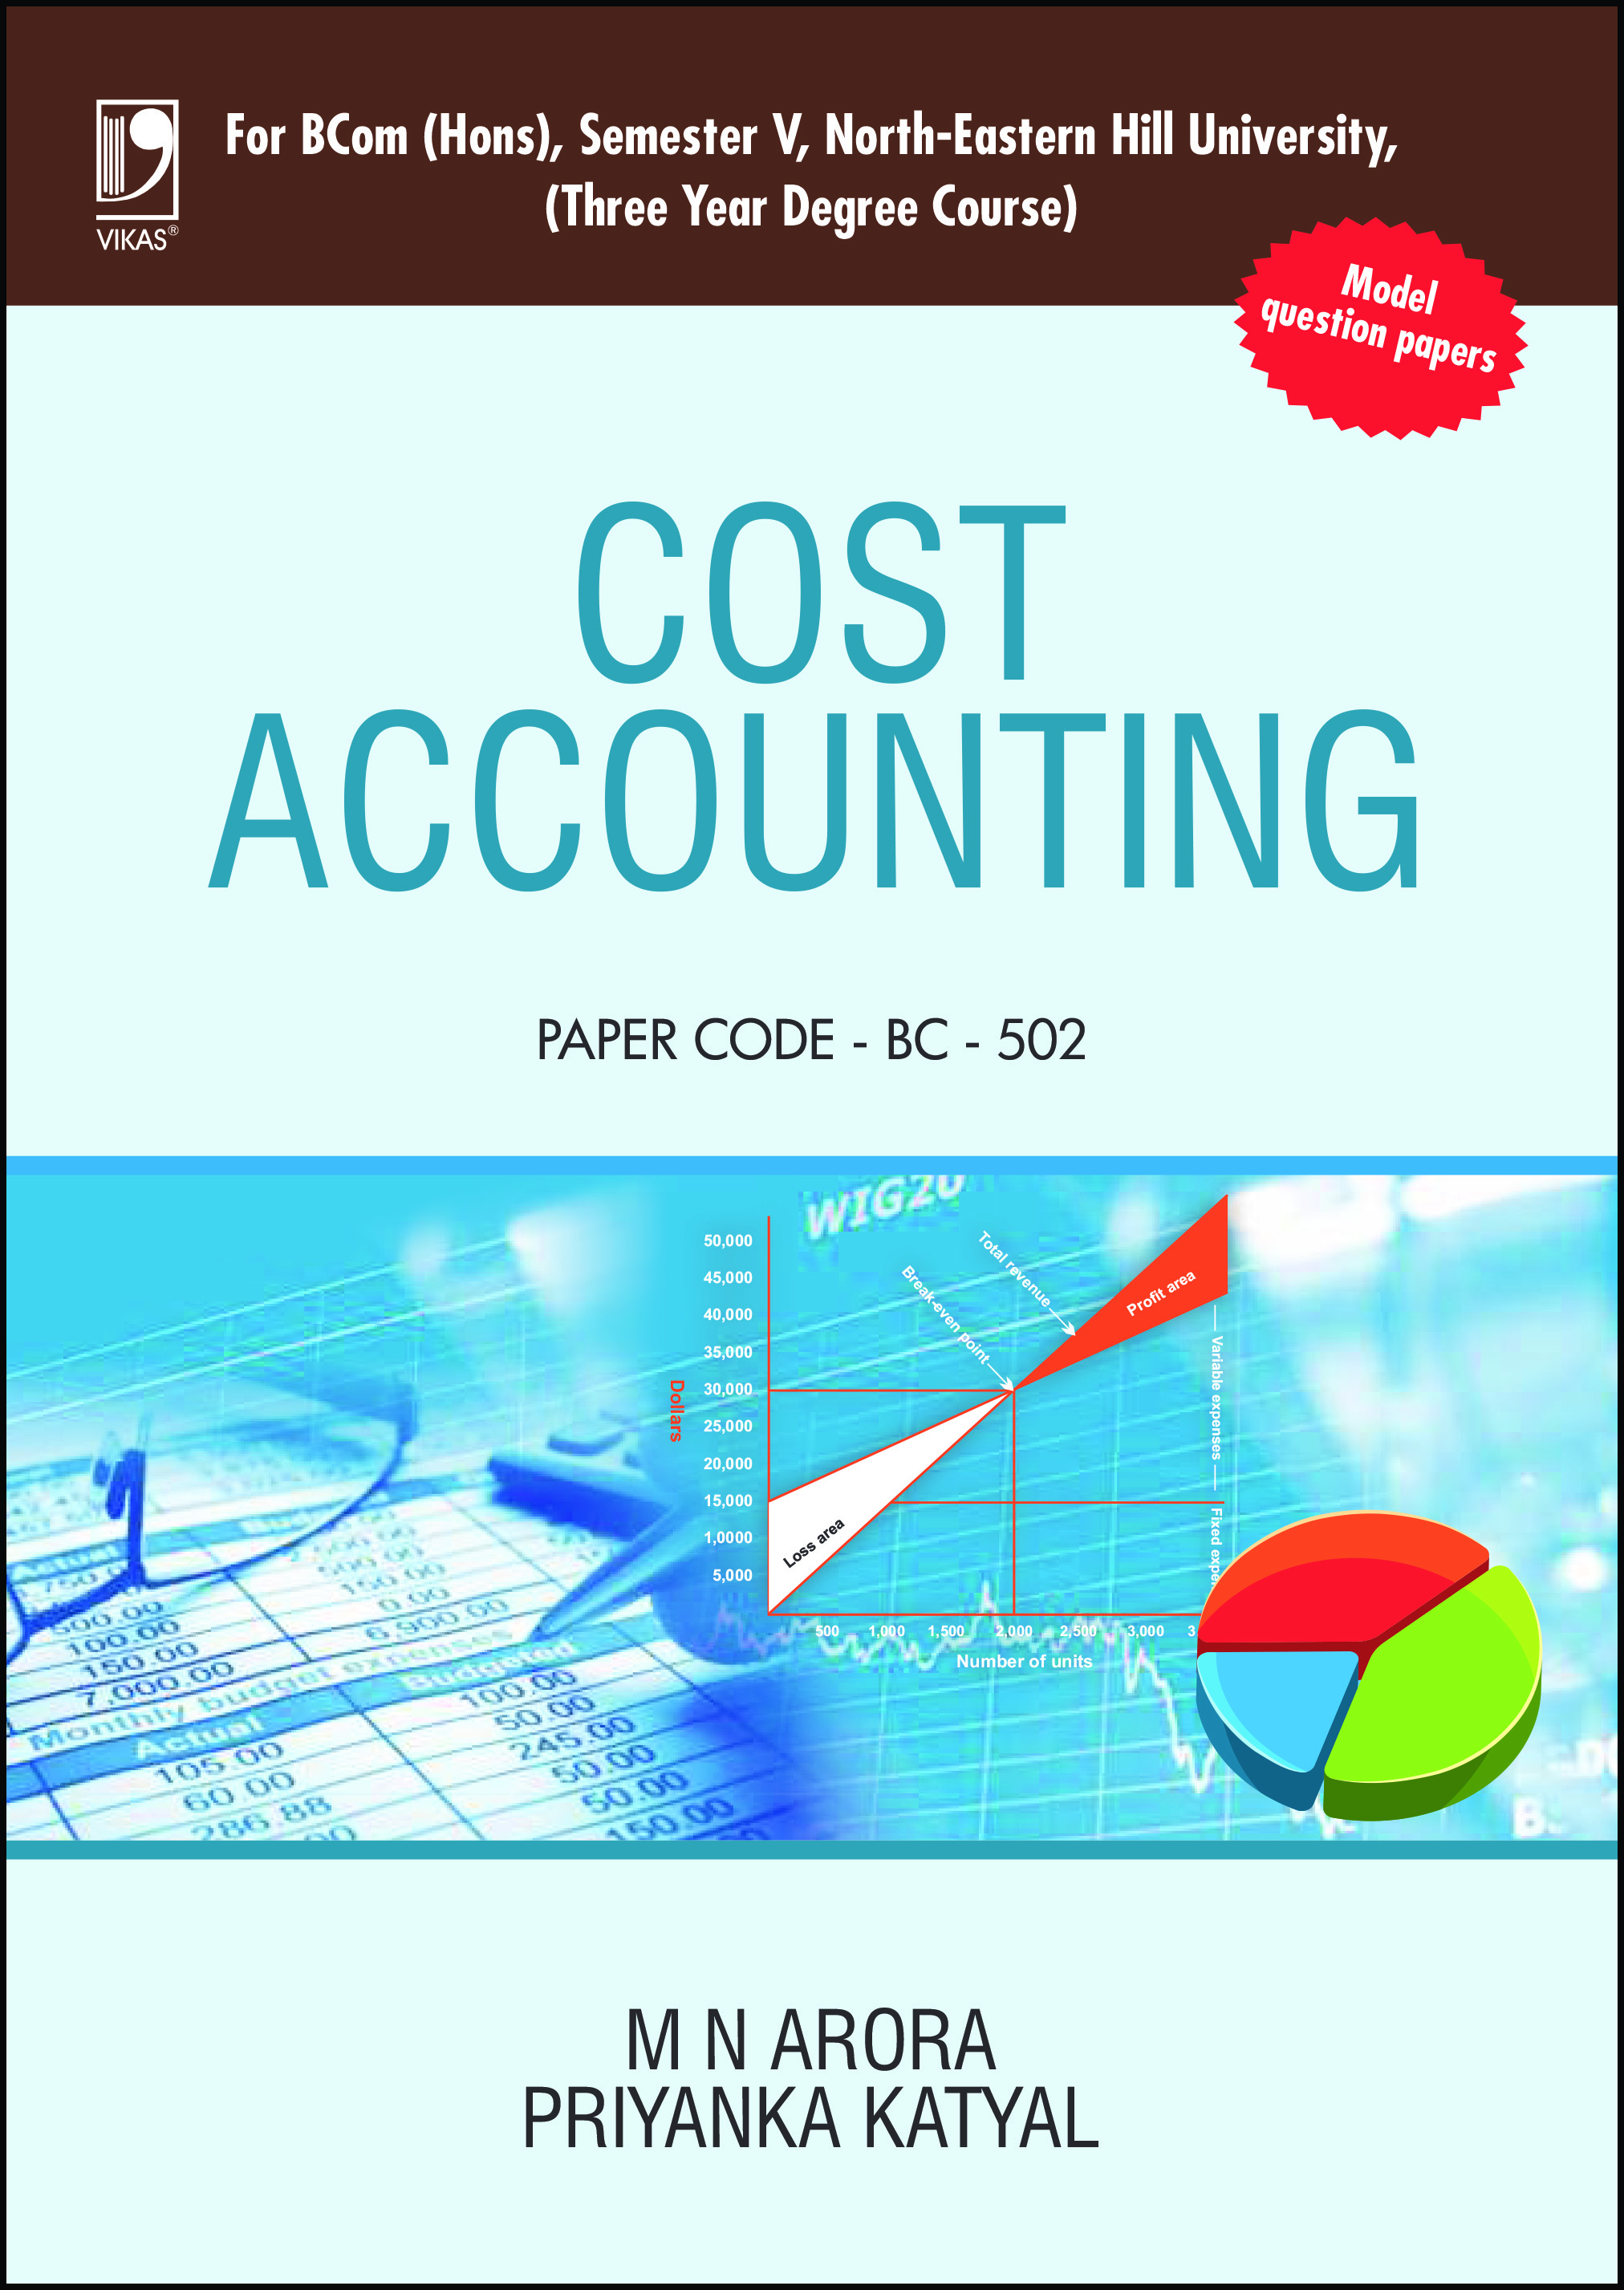 Cost Accounting (For B.Com. (Hons), 5th Semester, North-Eastern Hill University)